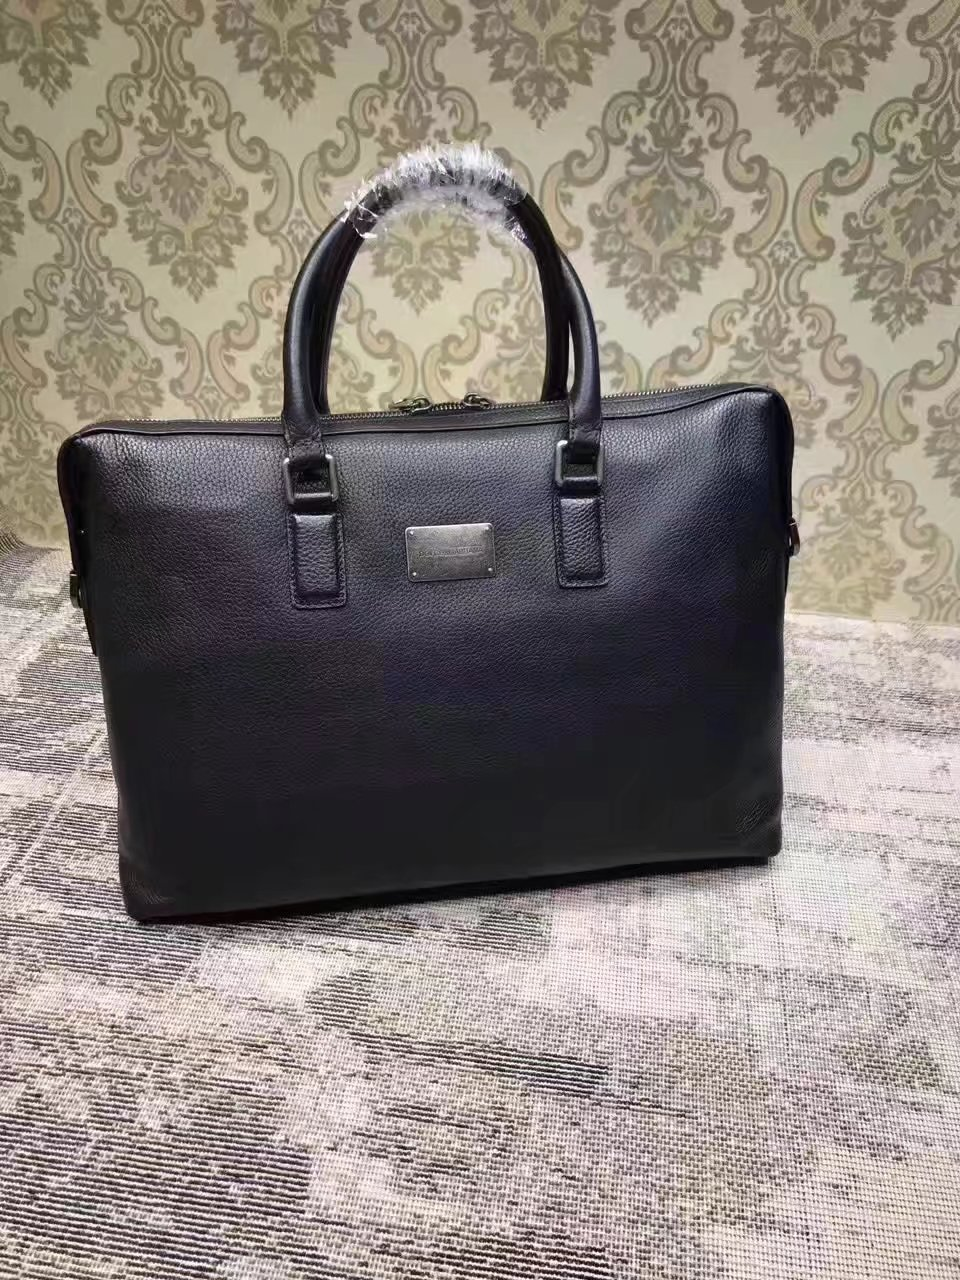 Dolce & Gabbana Men's Leather Briefcase Black